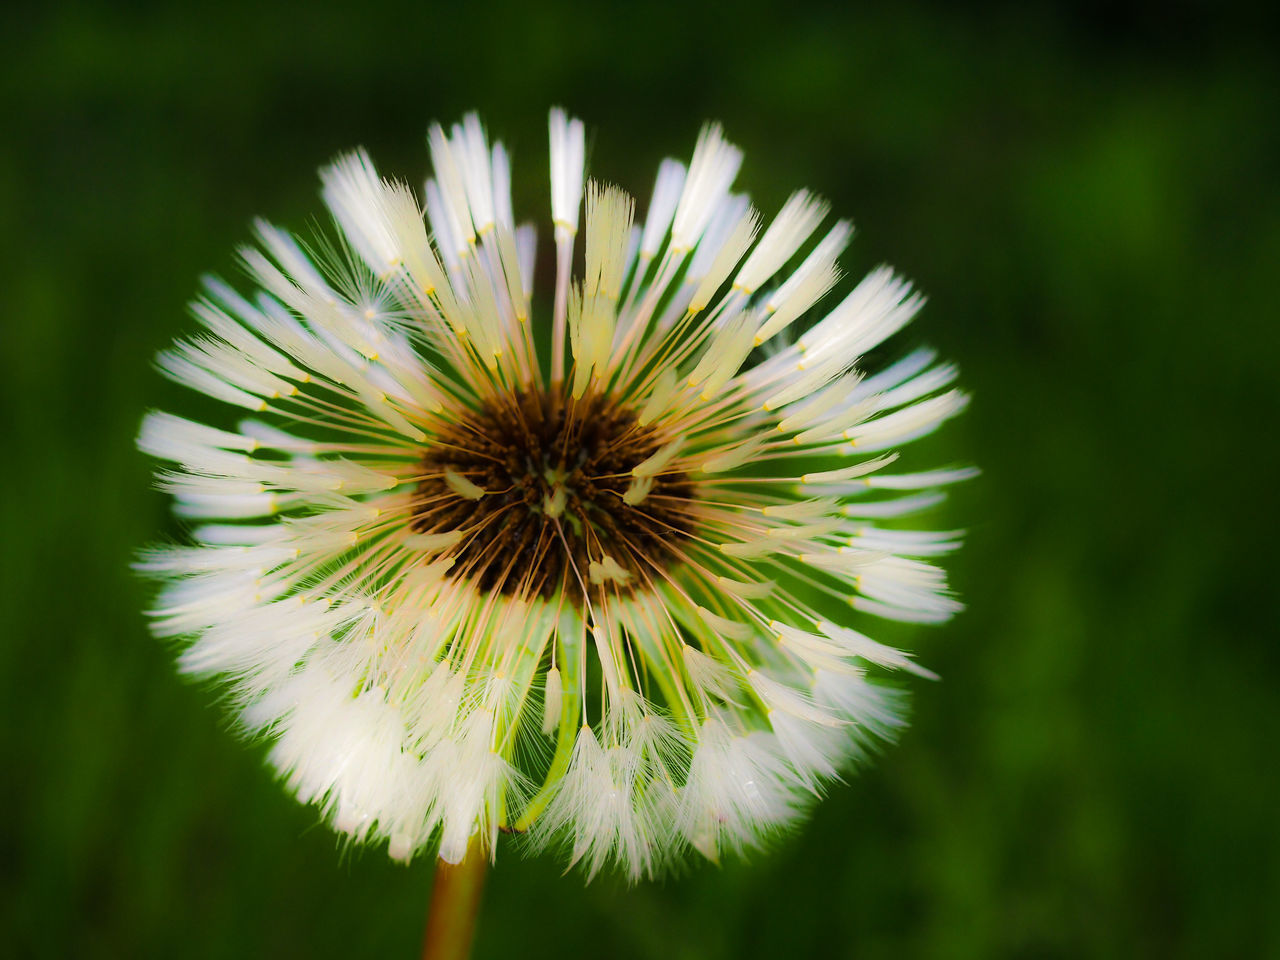 CLOSE-UP OF DANDELION AGAINST WHITE FLOWER